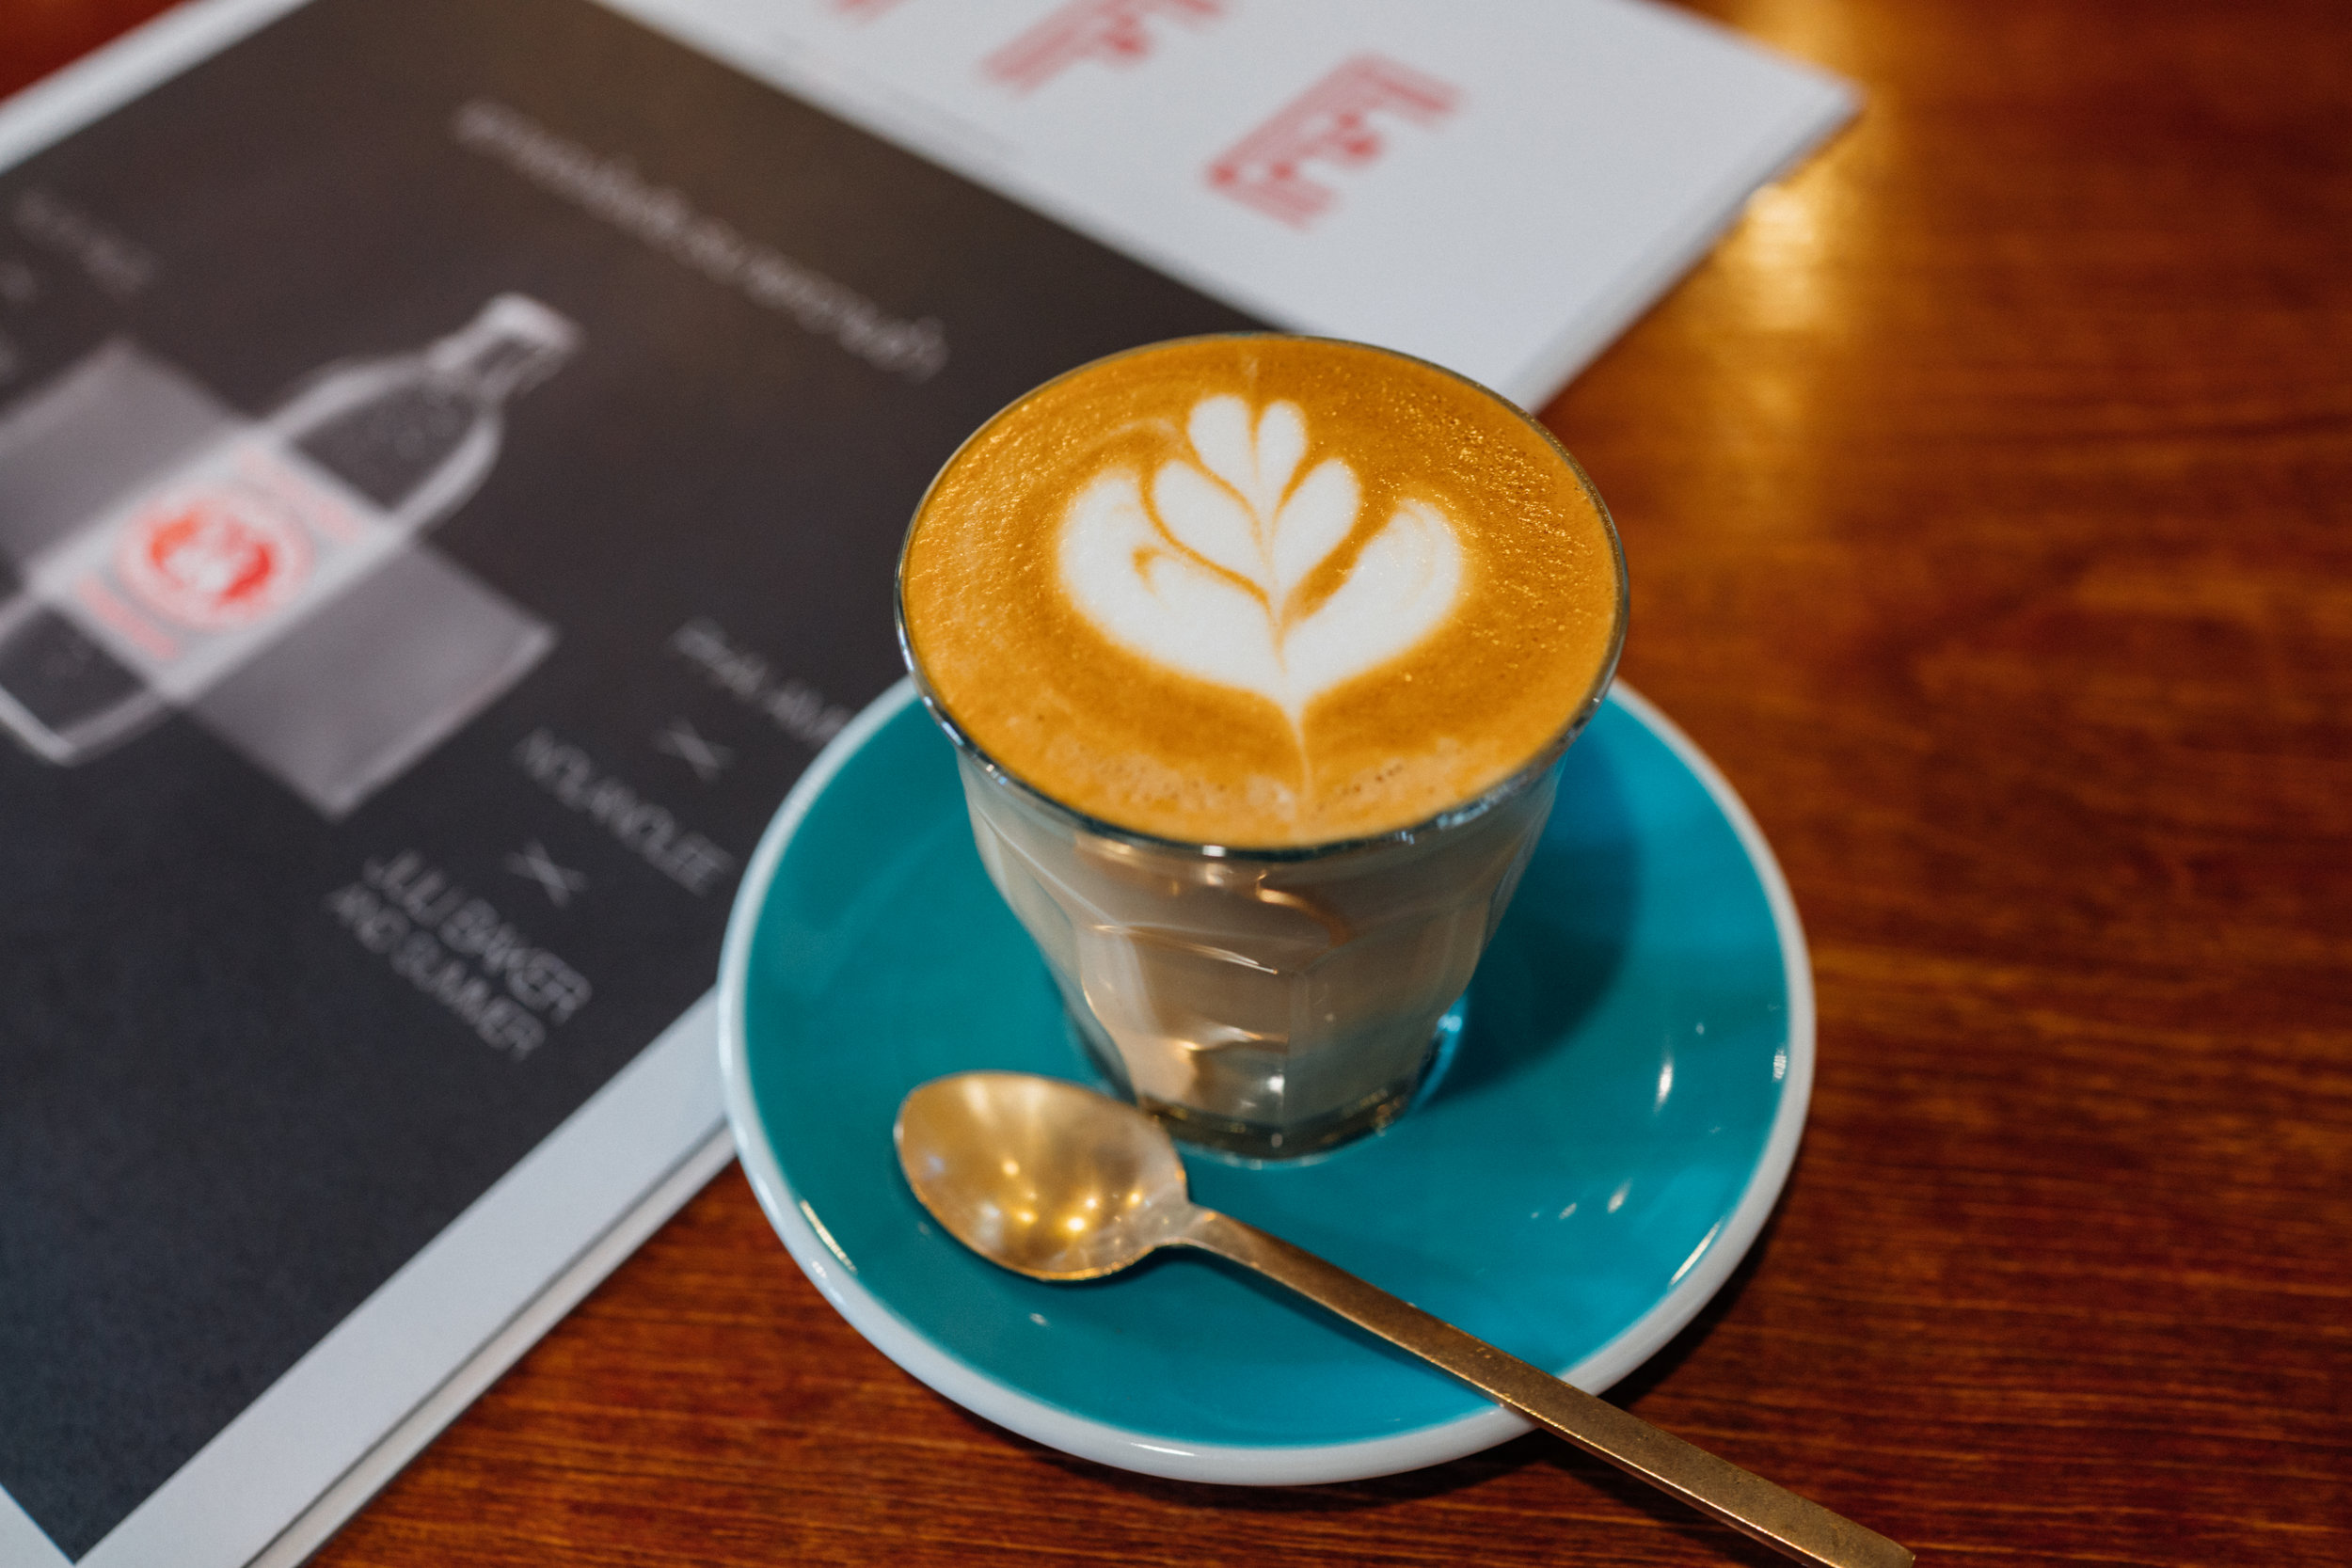 A piccolo at Ink & Lion cafe in Bangkok